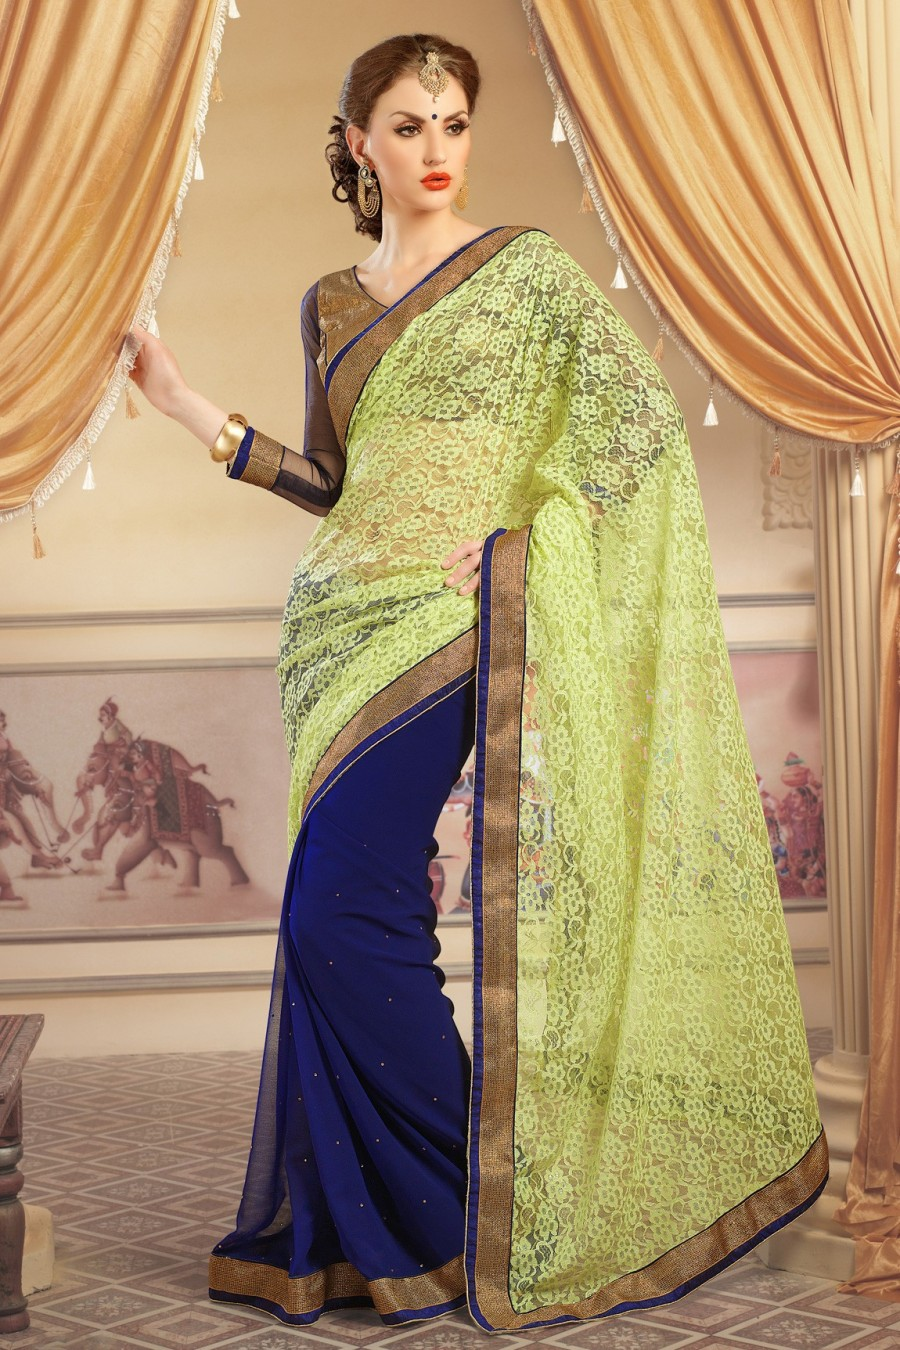 Buy Navy Blue and Light Green Georgette Net Jacquard Saree with Copper and Blue Blouse Online